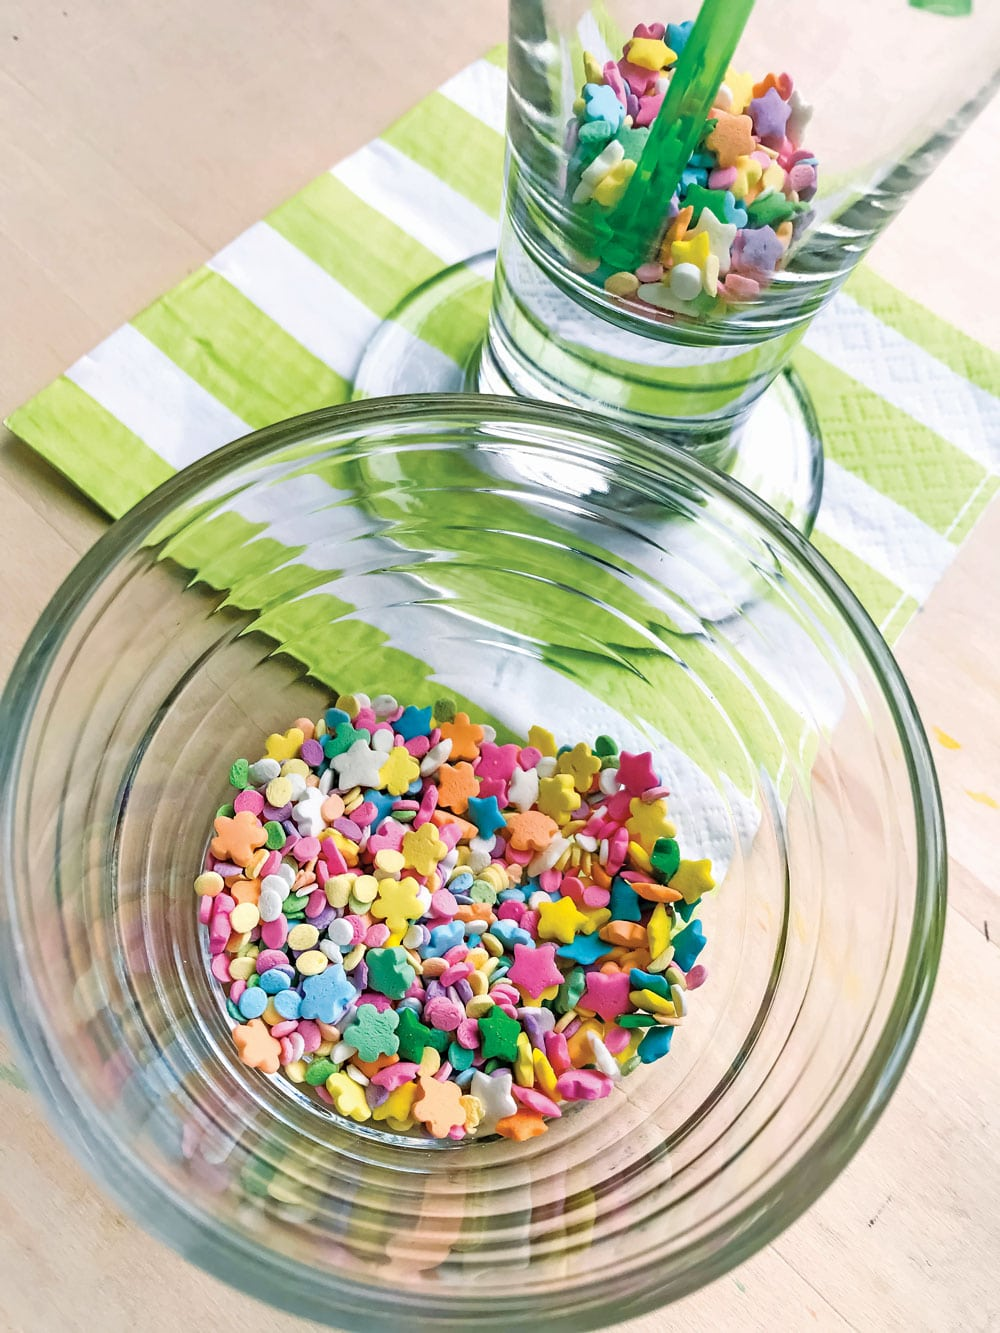 For an extra special St. Patrick's Day surprise, you can prep by covering the bottom of the glass with a layer of rainbow sprinkles, because this little trick NEVER fails to impress.